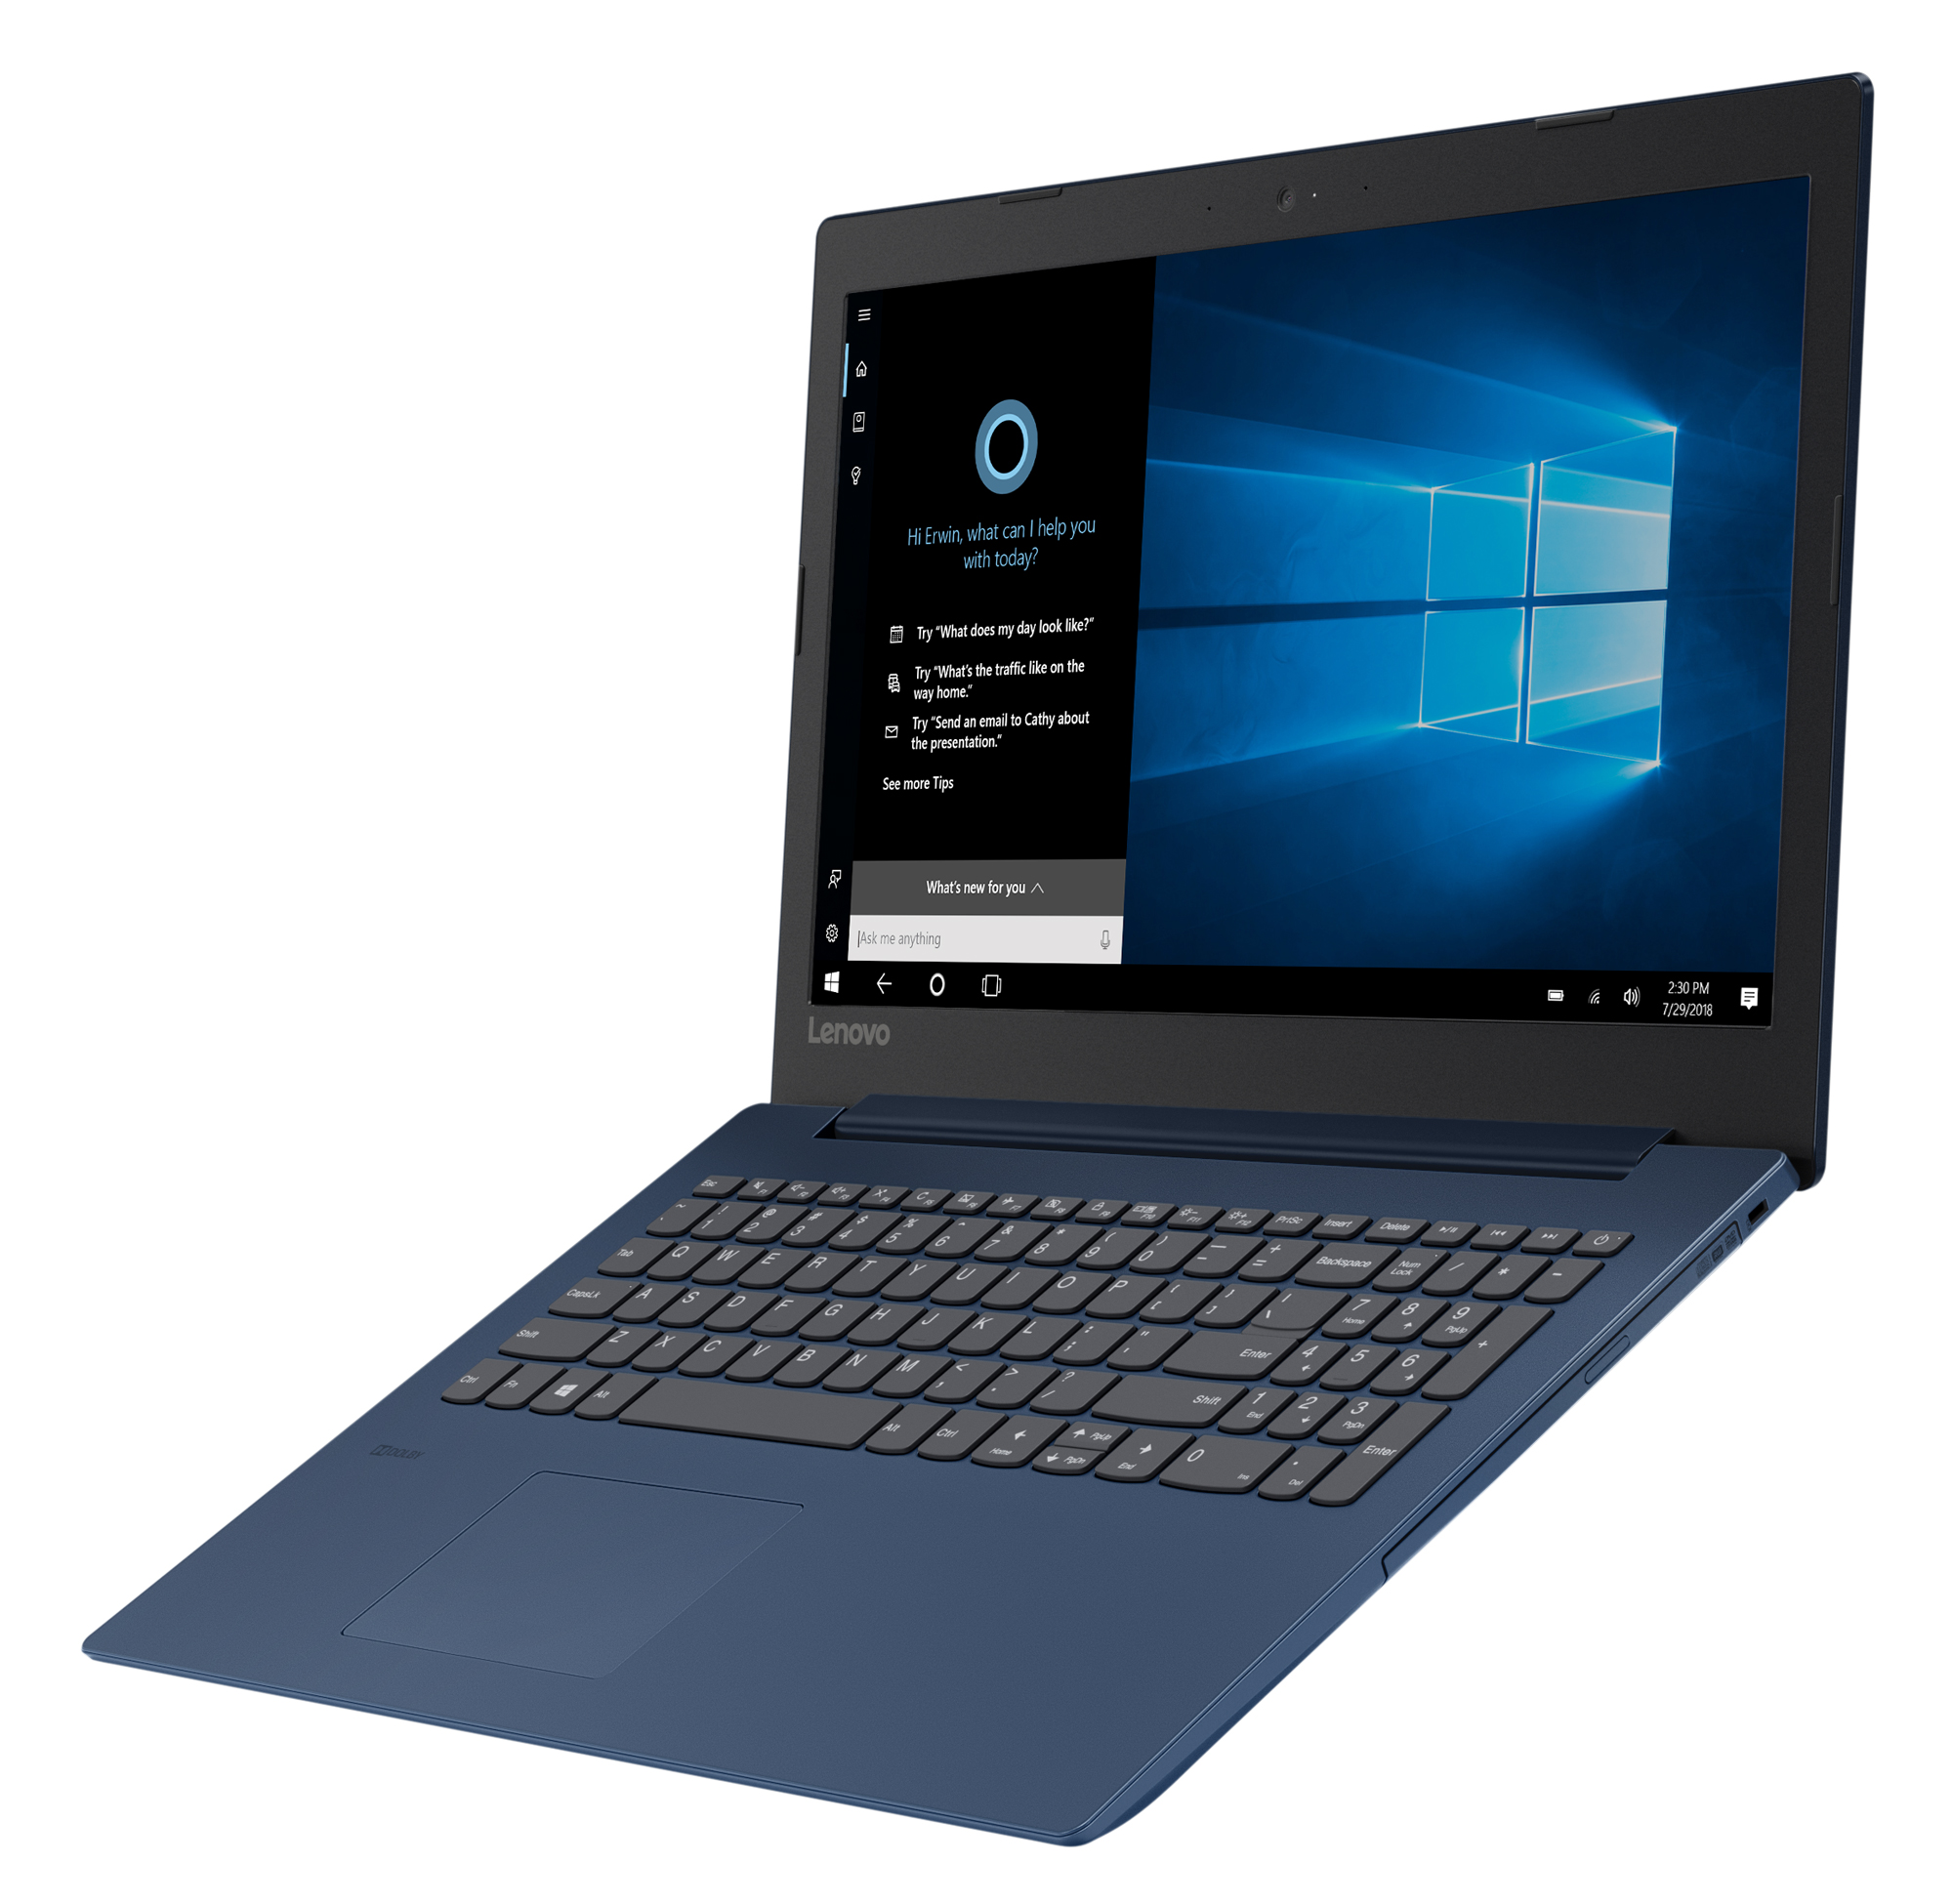 Фото  Ноутбук Lenovo ideapad 330-15 Midnight Blue (81DC009ARA)